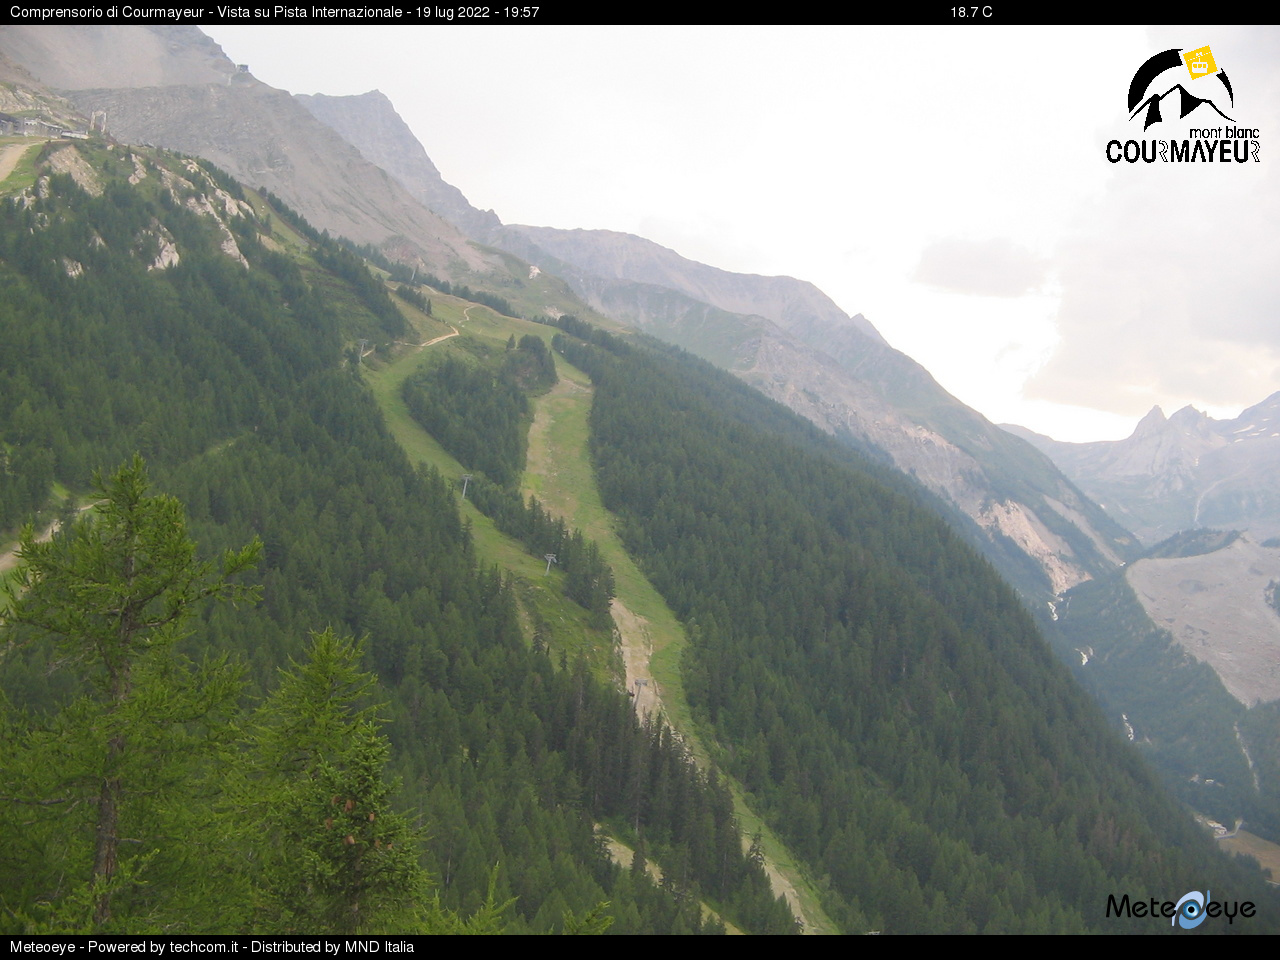 Courmayeur Plan Checrouit-Val Veny - Internazionale